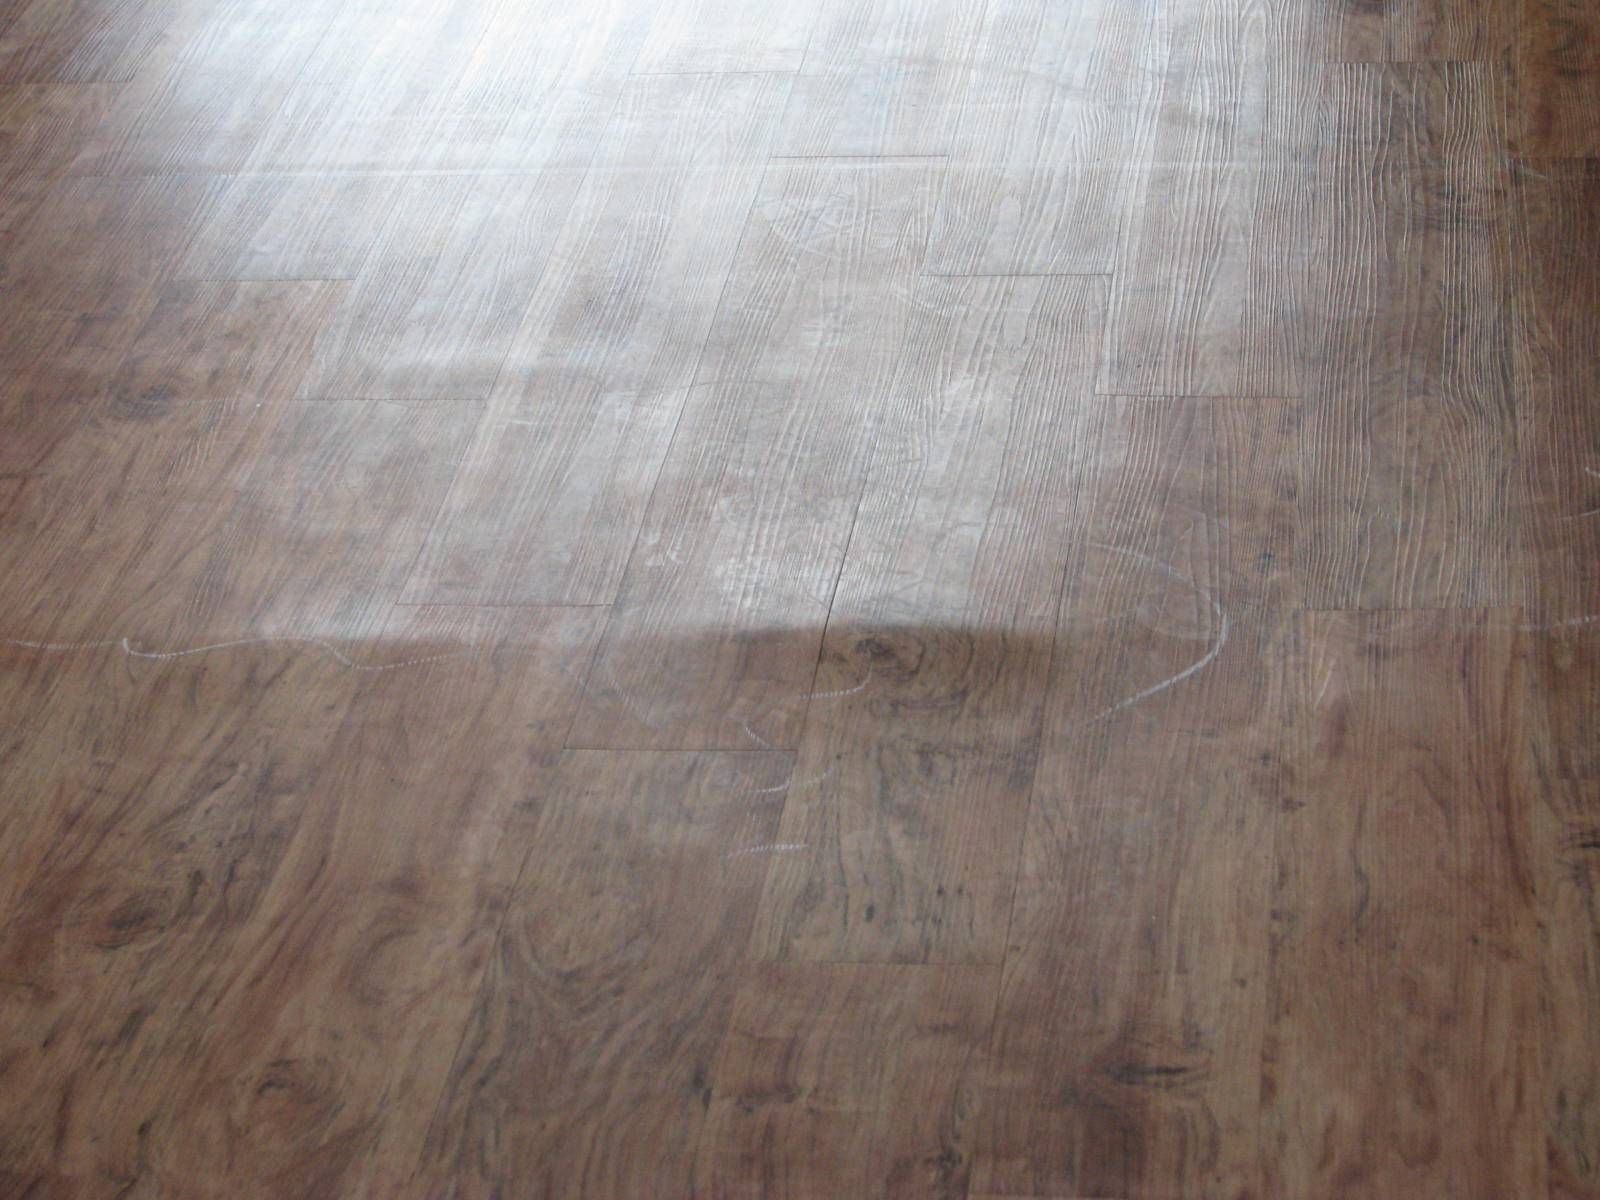 Sheets Laminated Wood Floor Grey Wood Cheap Laminate Flooring Flooring Laminate Flooring Wood Flooring Laminate Flooring